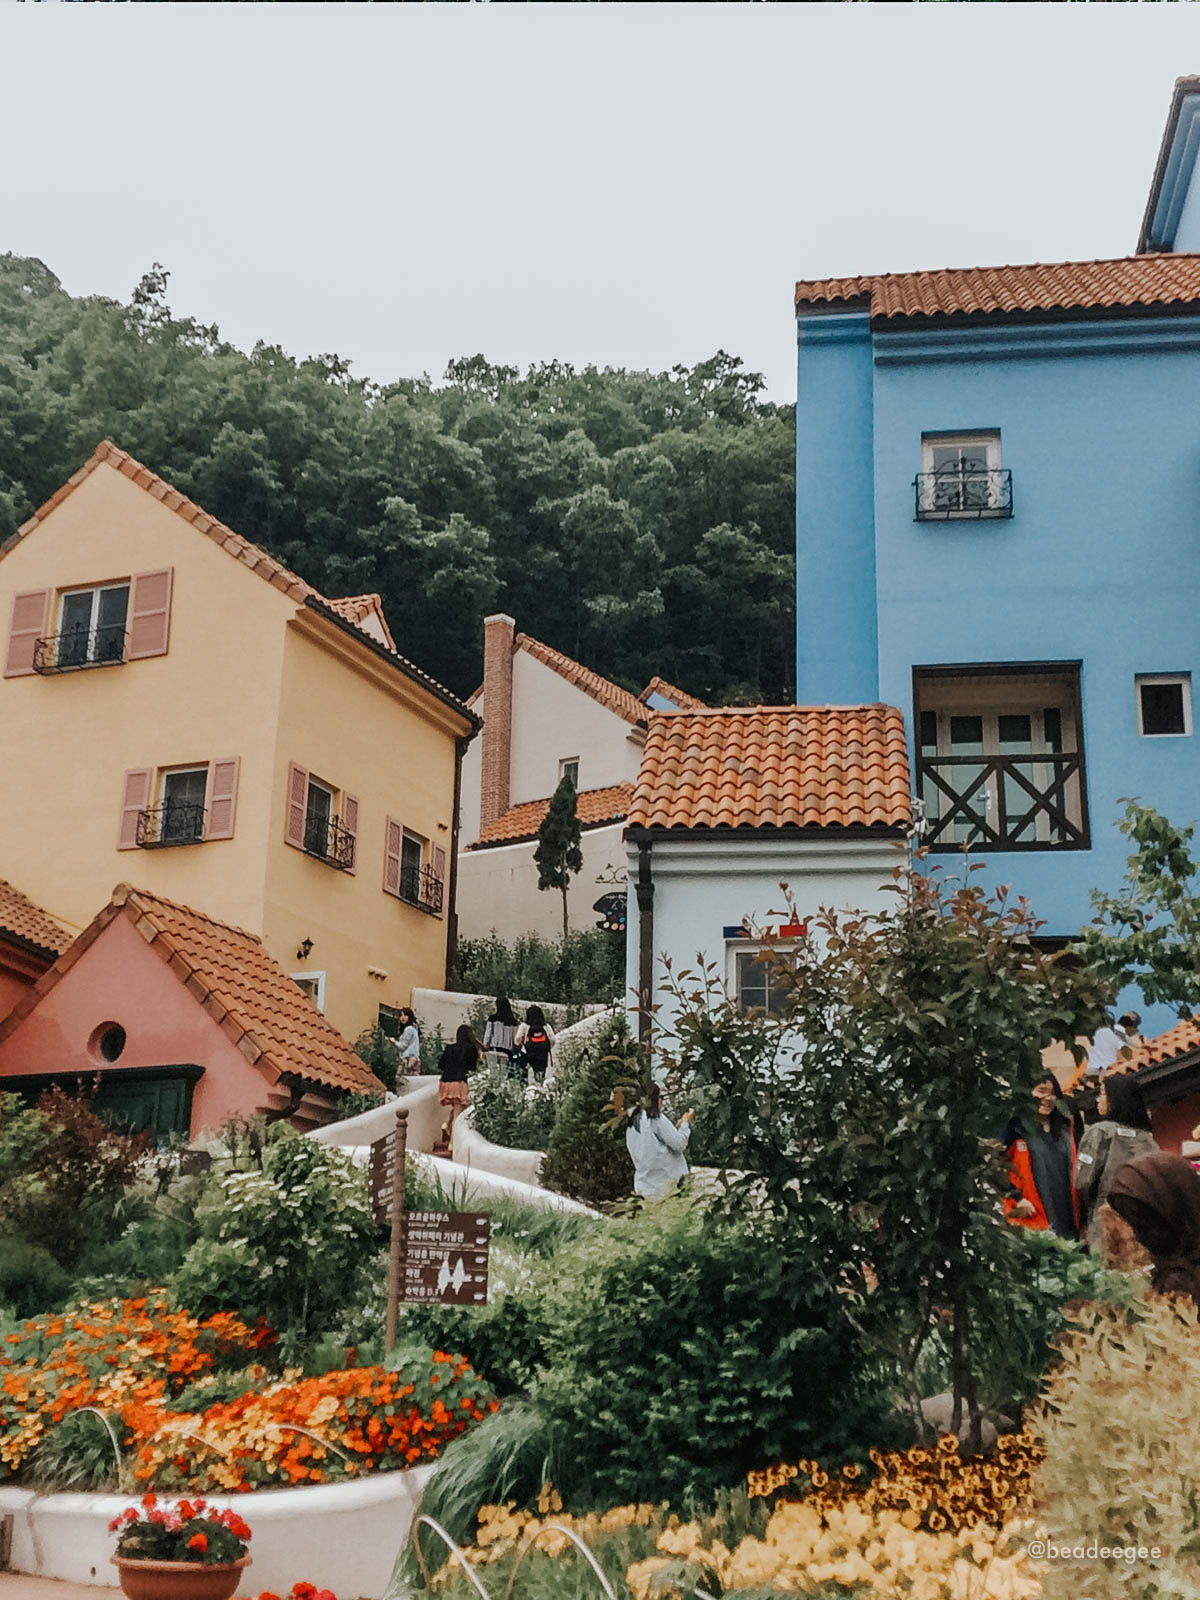 The colorful houses of Petite France